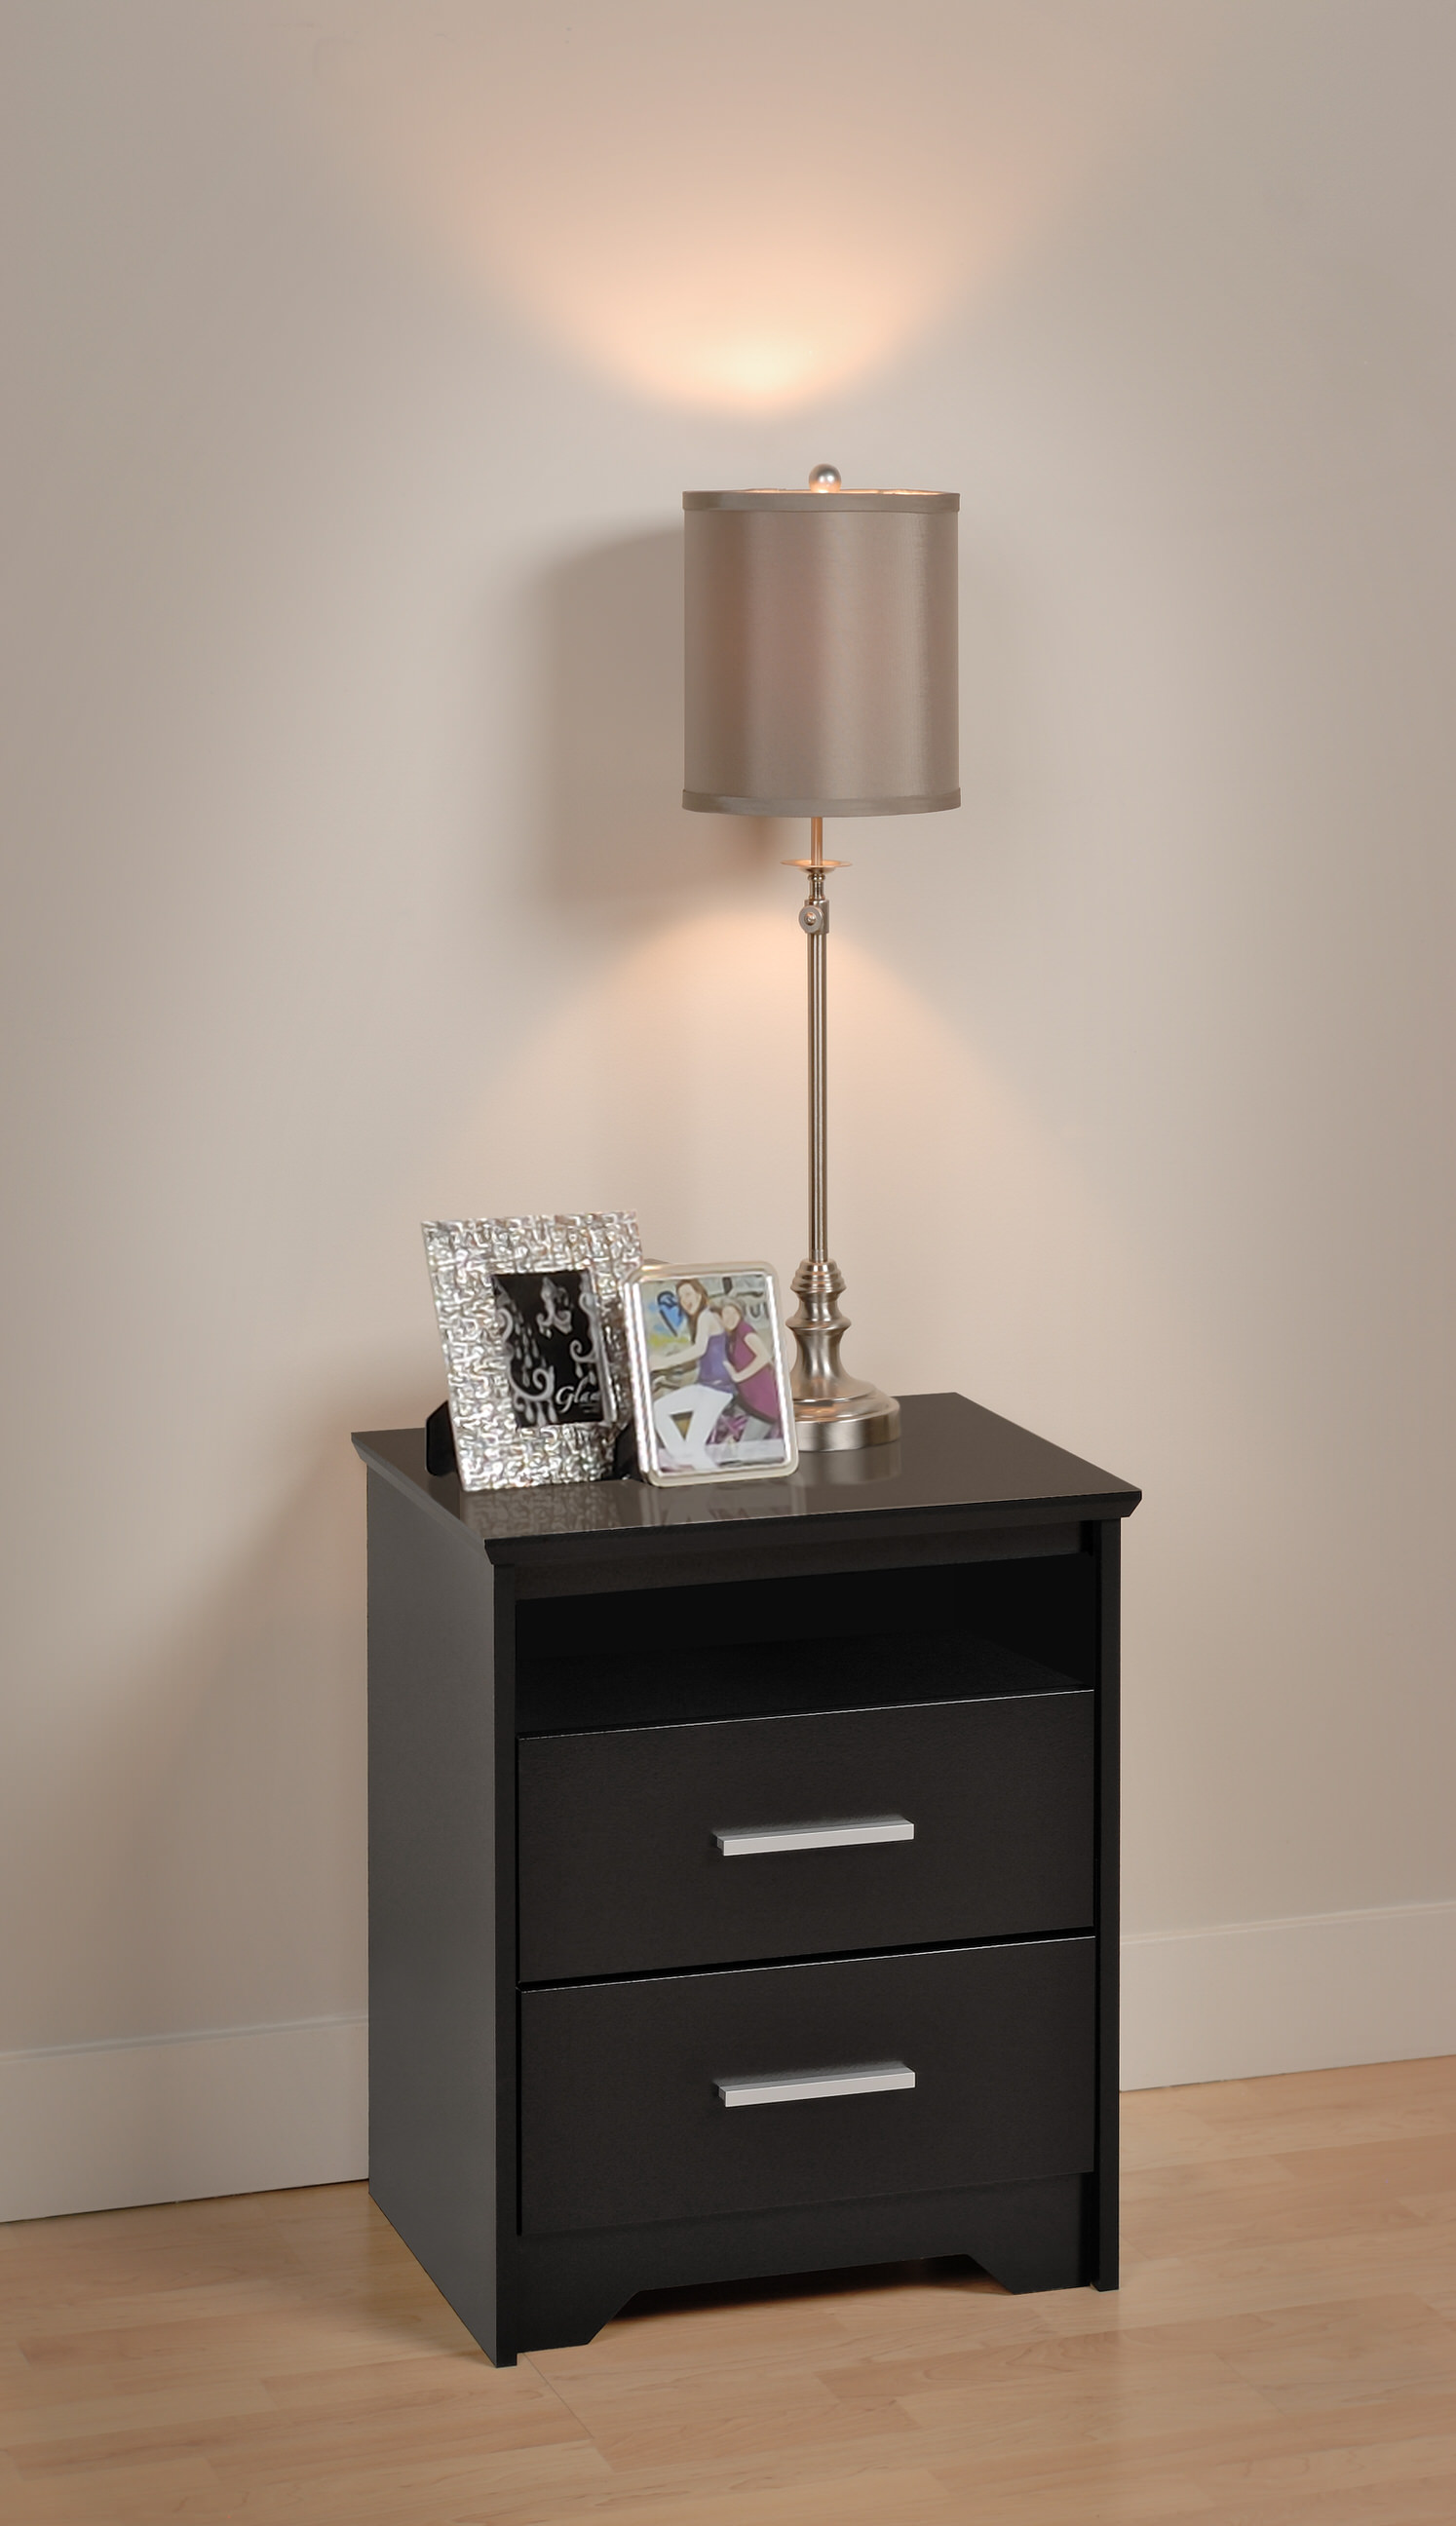 coal harbor drawer tall nightstand prepac cocktail tables accent table white night gold side lamps closet barn doors drop leaf set lucite furniture outdoor couch ikea living room